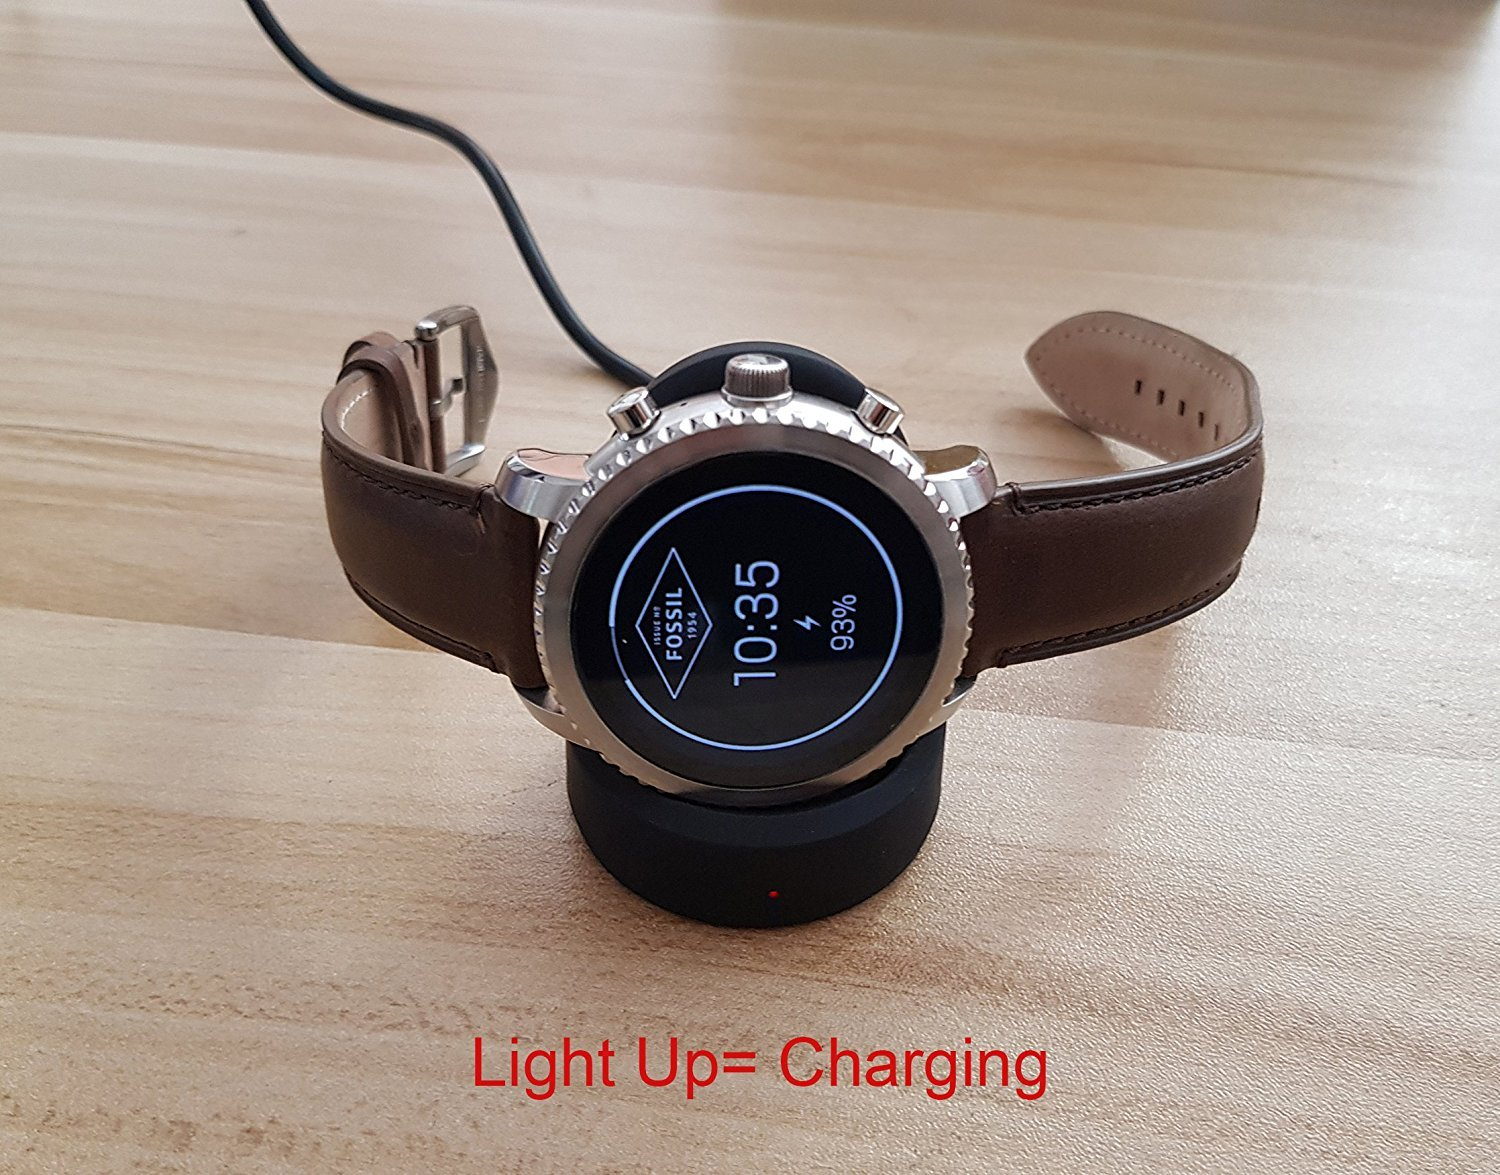 Ceston Sans Fil Chargeur De Station Pour Fossil Q Explorist (Noir): Amazon.fr: High-tech